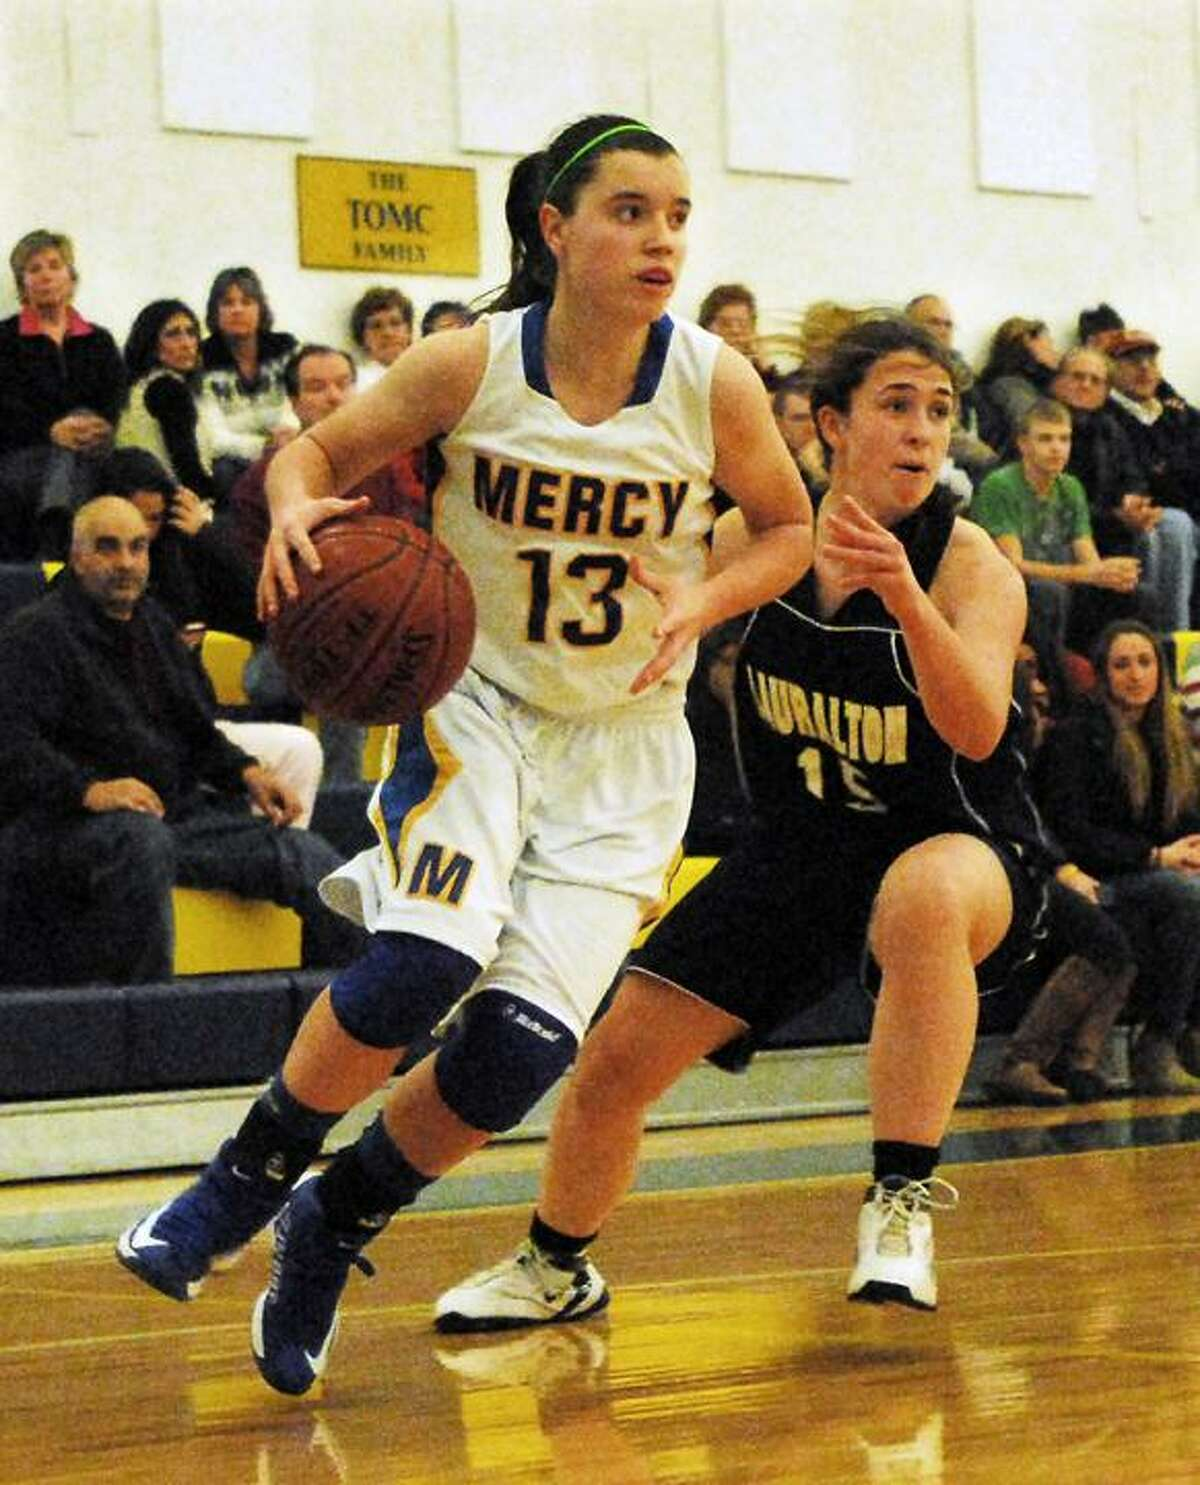 Catherine Avalone/The Middletown Press Mercy senior captain Maria Weselyj drives as Lauralton Hall junior Maureen Connolly defends during the Mercy Classic championship game Friday night. The Mercy Tiges defeated the Lauralton Hall Crusaders 66-47.